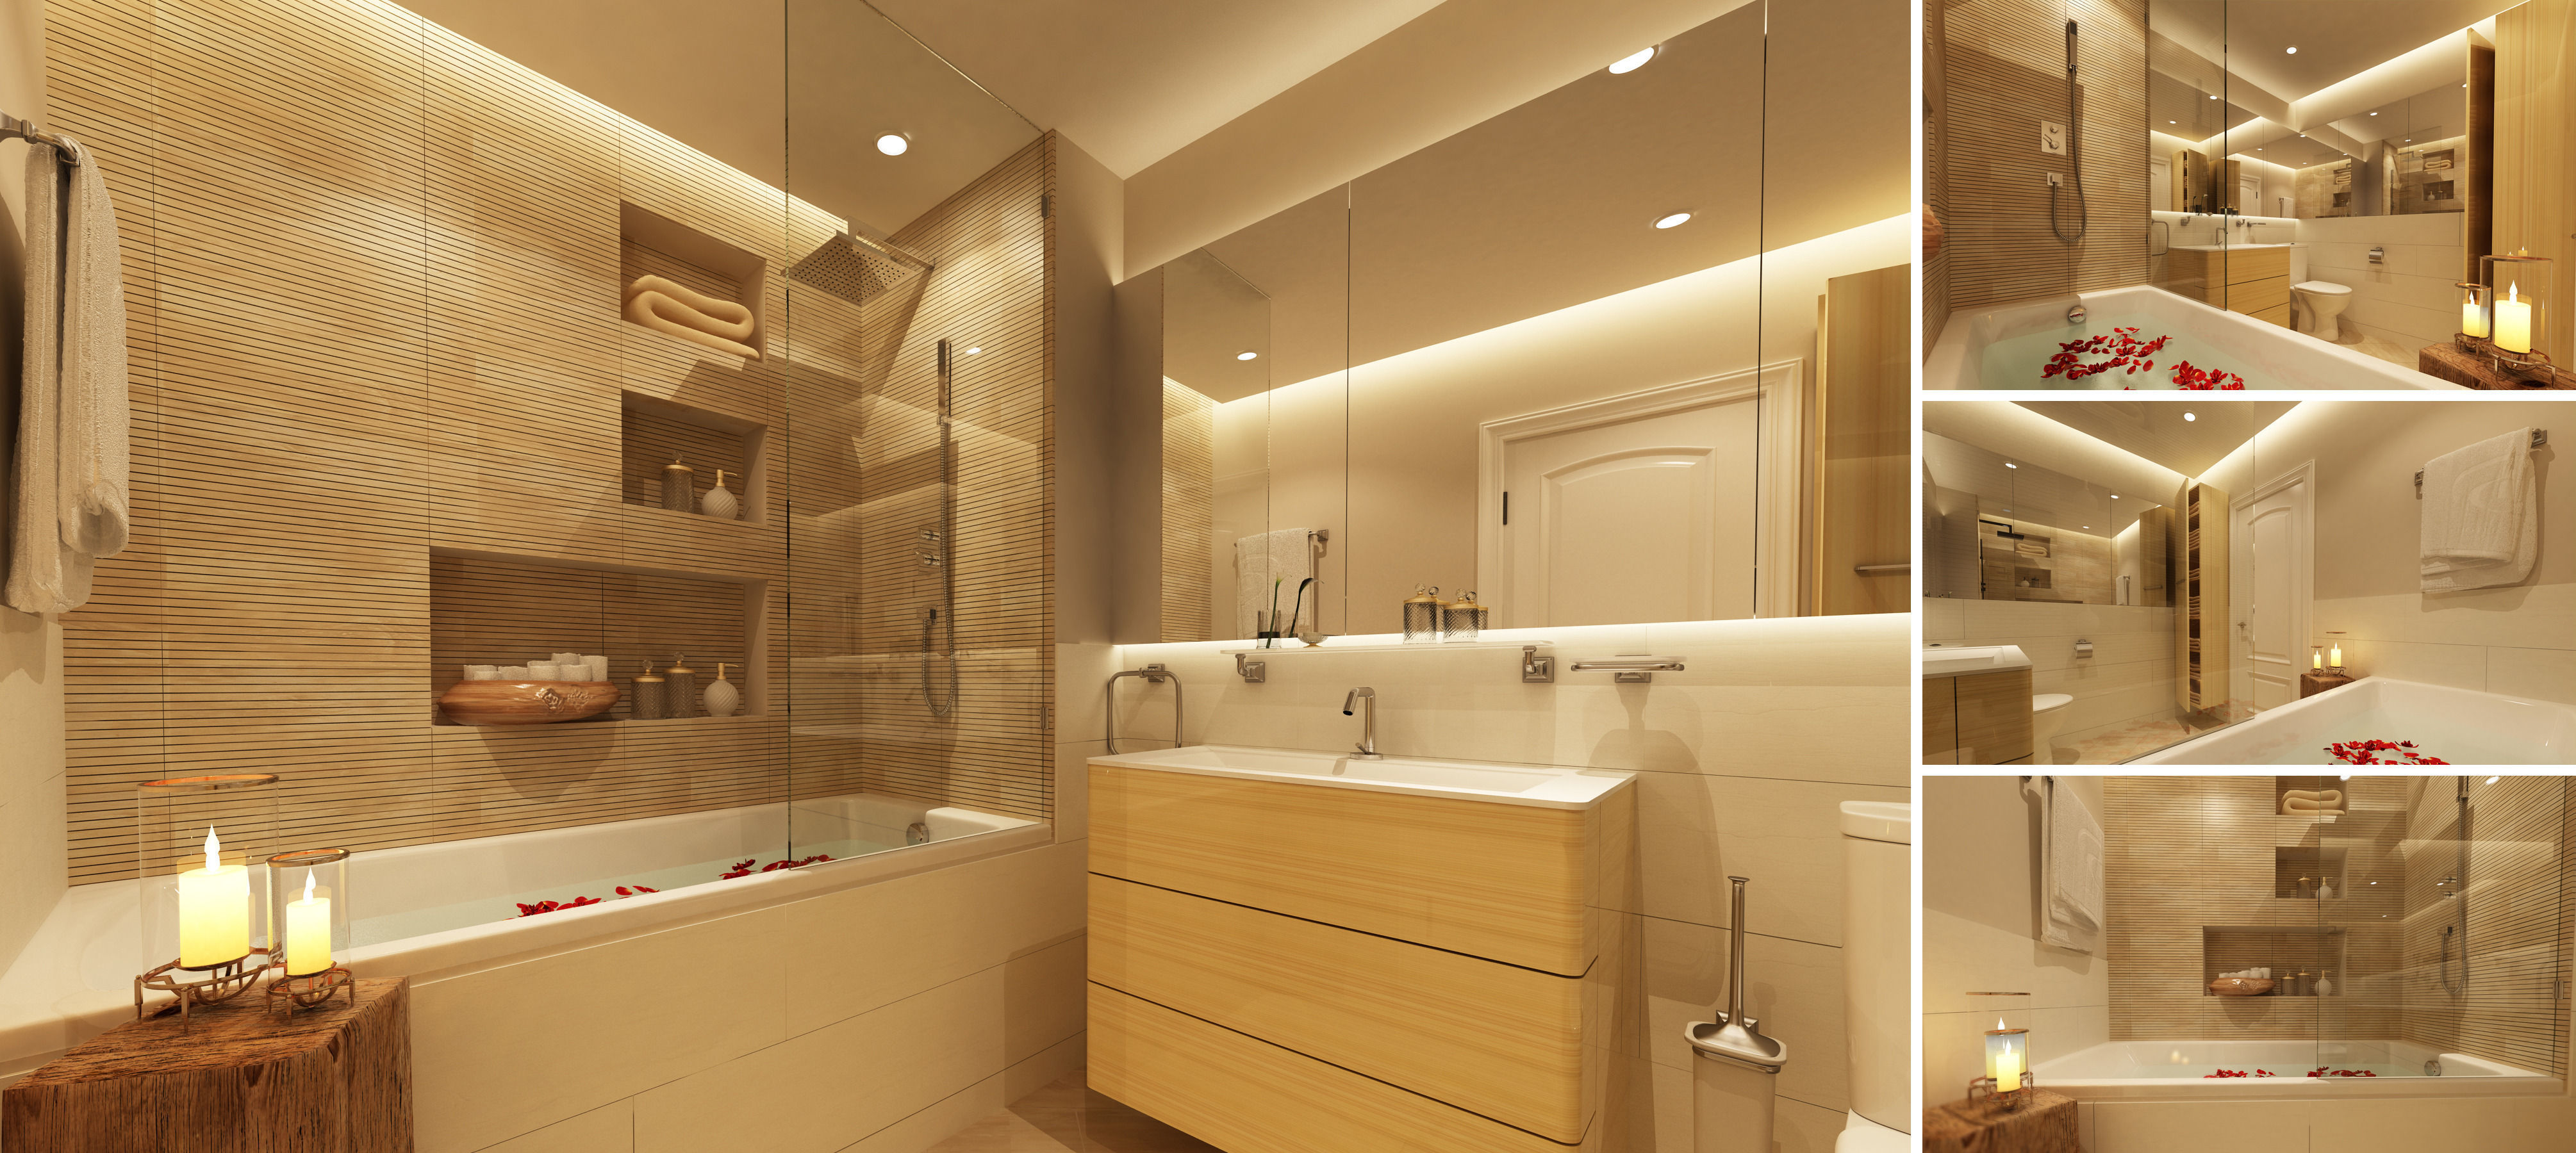 Master bathroom 3d model max for New model bathroom design